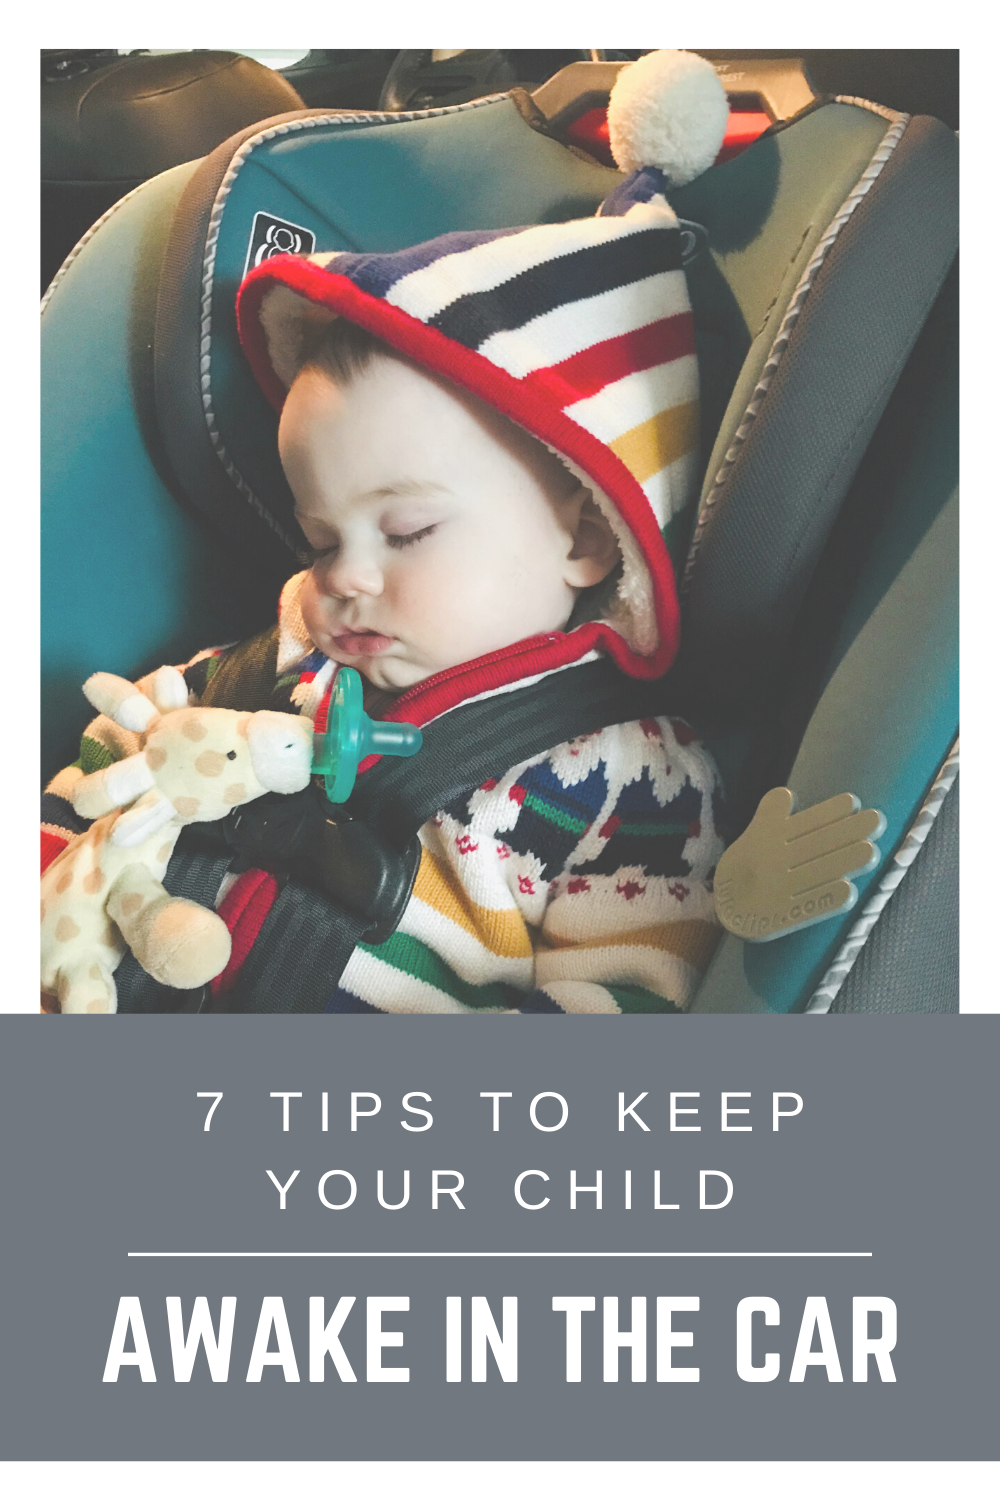 Little Bell Sleep Solutions, littlebellss, sleep coach, Pittsburgh sleep consultant, car nap, napping in the car, how to keep a kid awake in the car